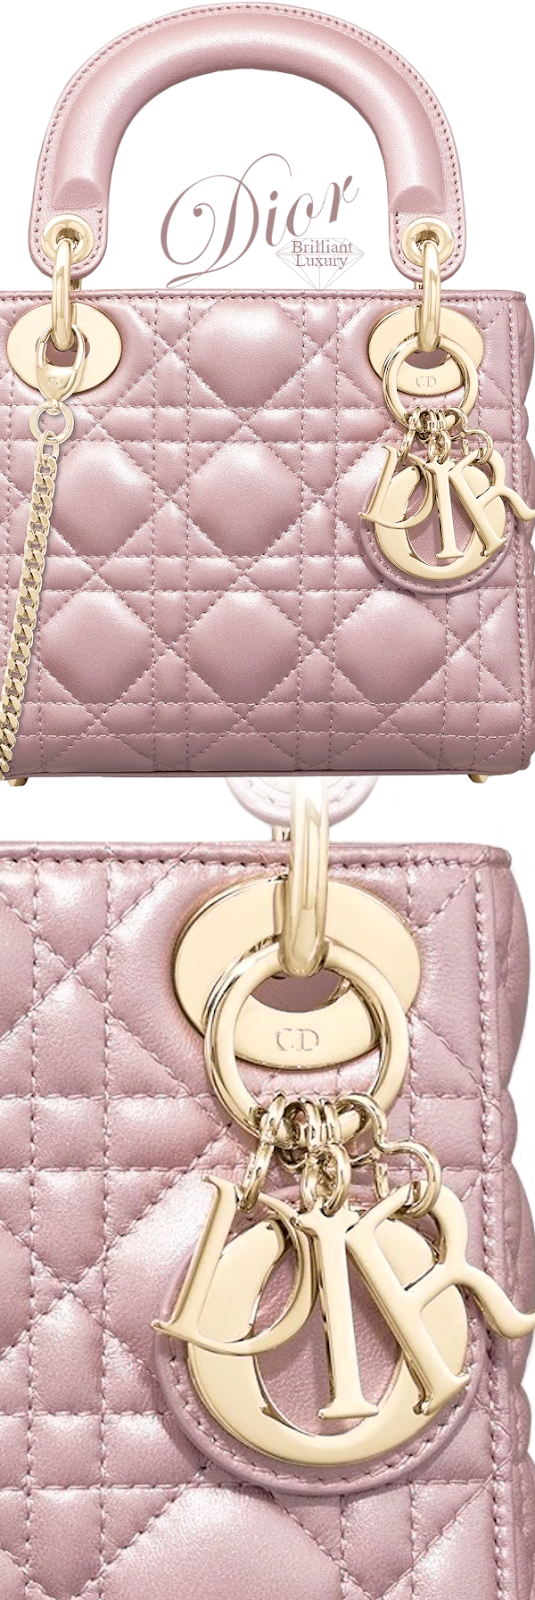 Dior Lady Dior Lotus Pearly Mini Bag #brilliantluxury